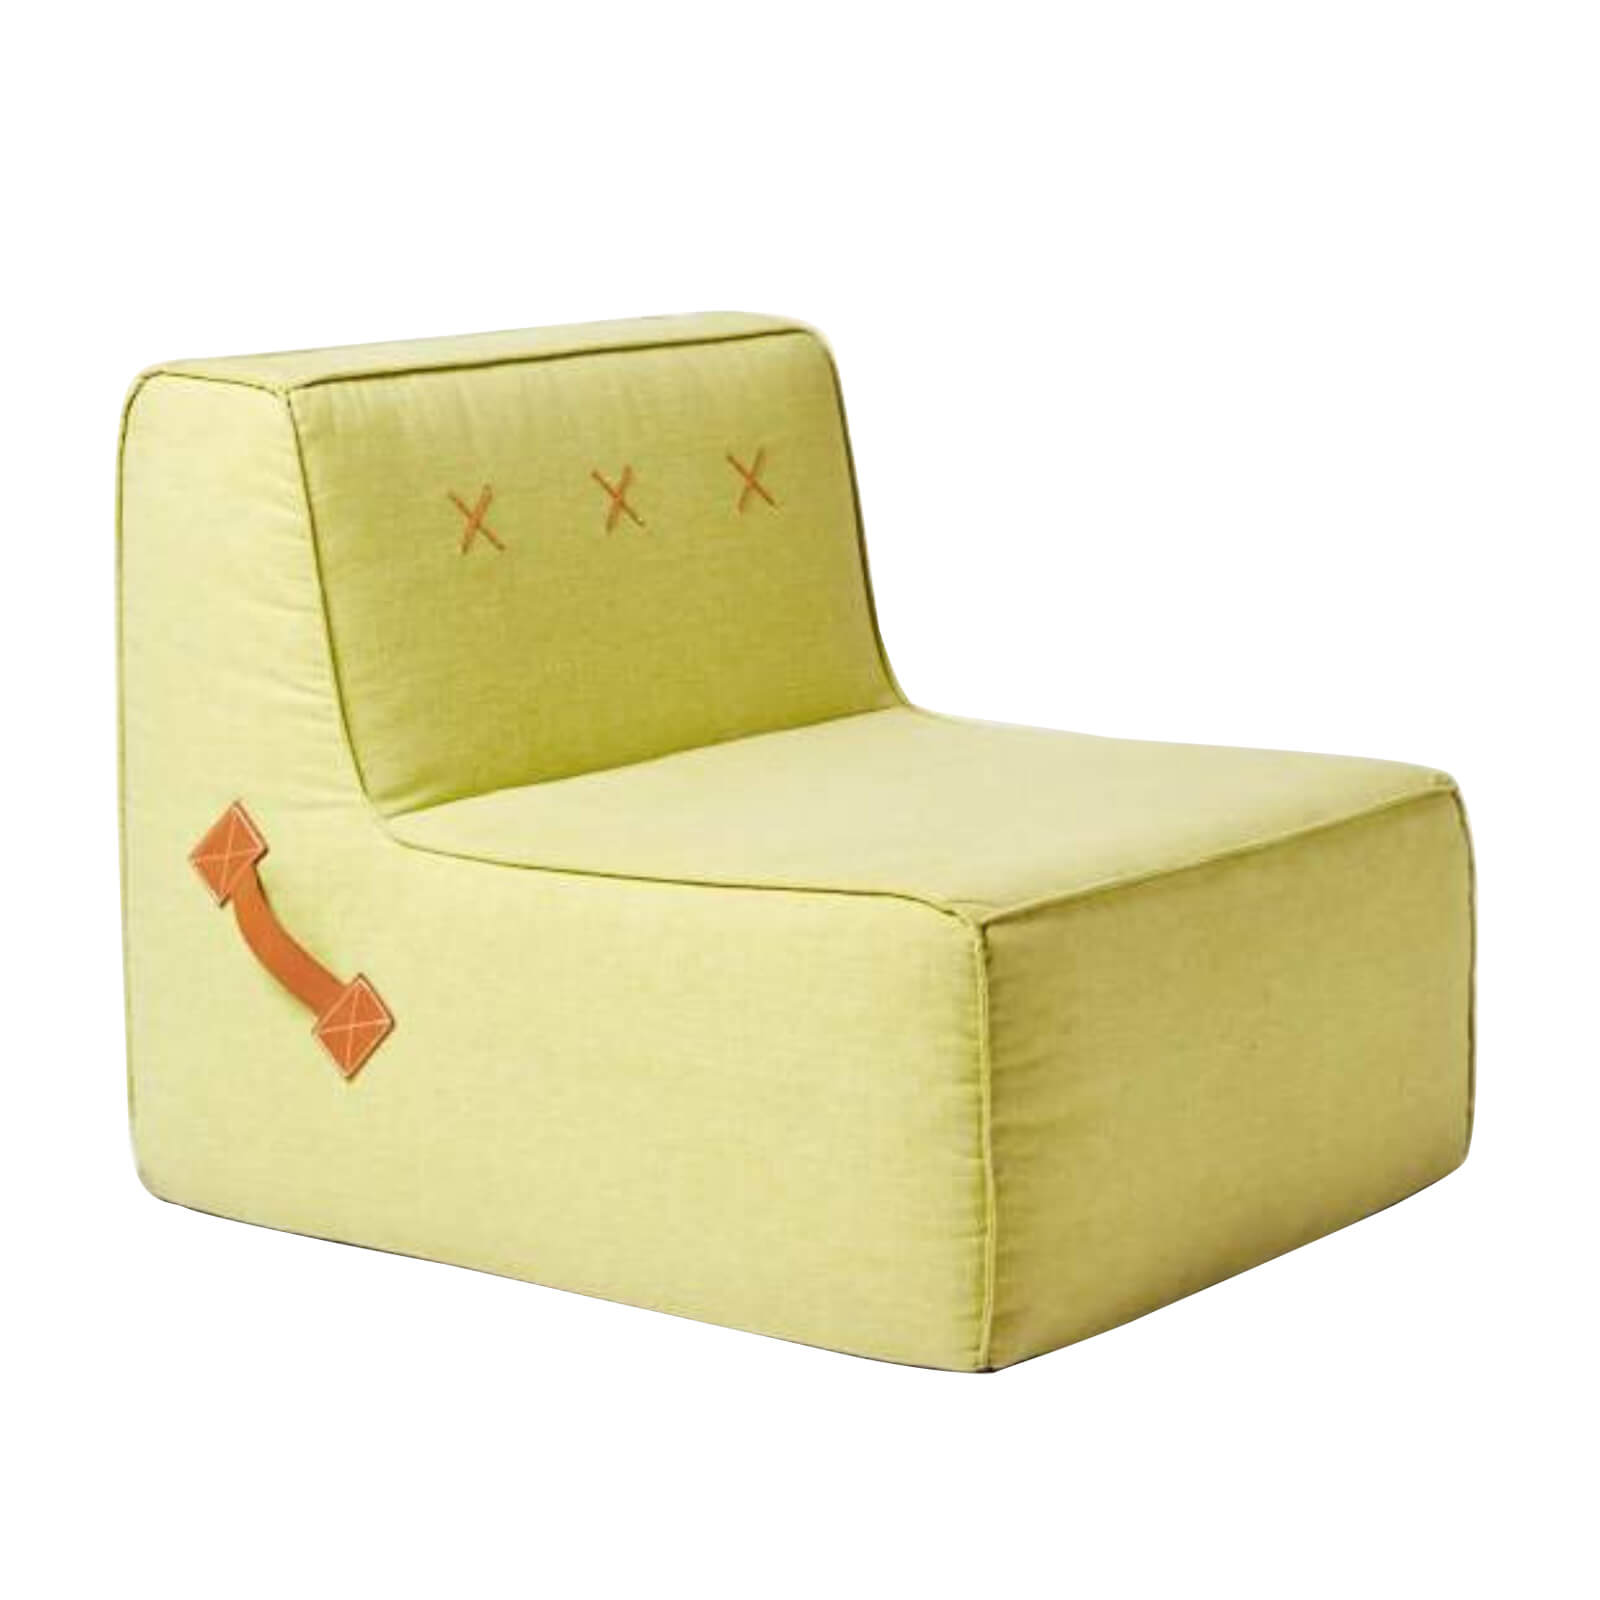 Two Design Lovers Koskela Quadrant Soft Sofa Pear Green